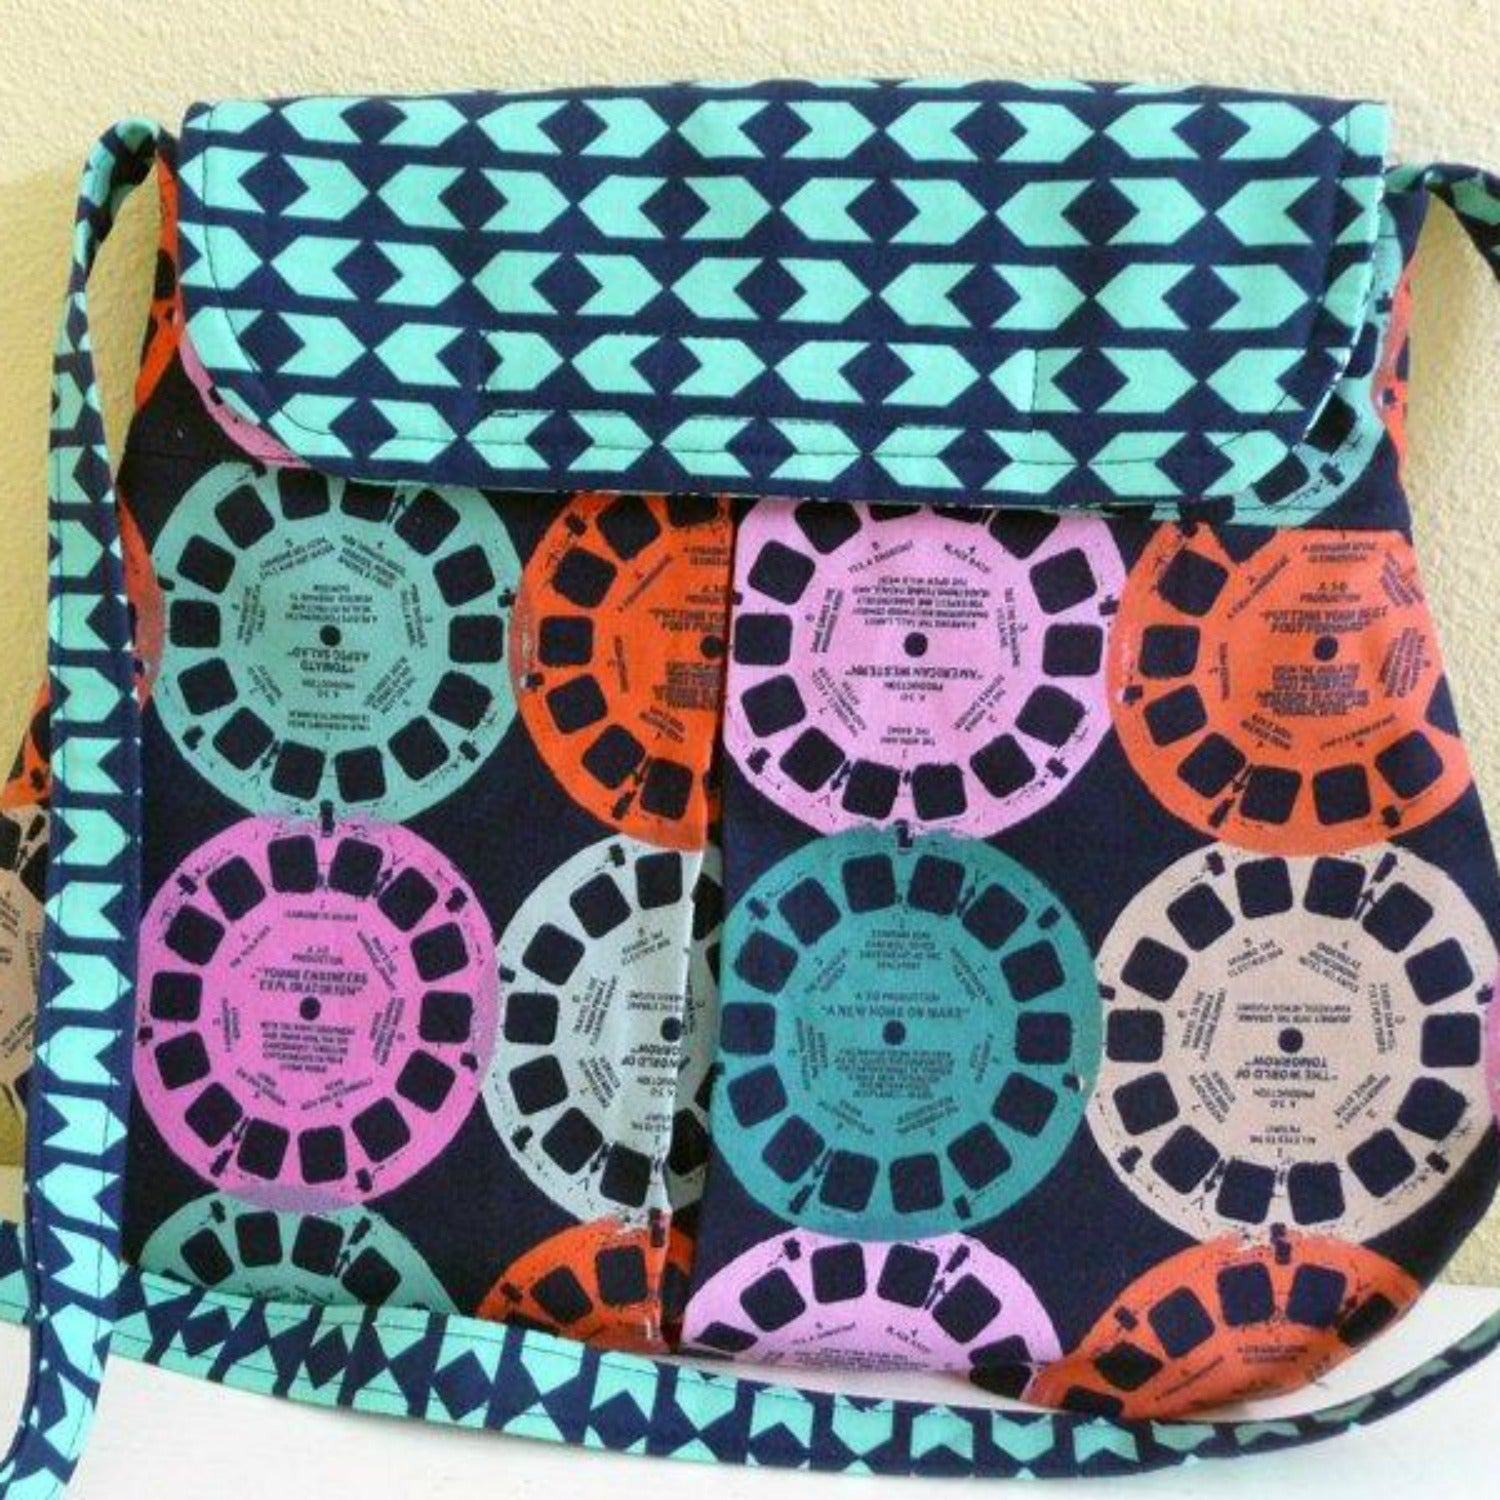 Retro Viewfinder Pleated Shoulder Bag purse